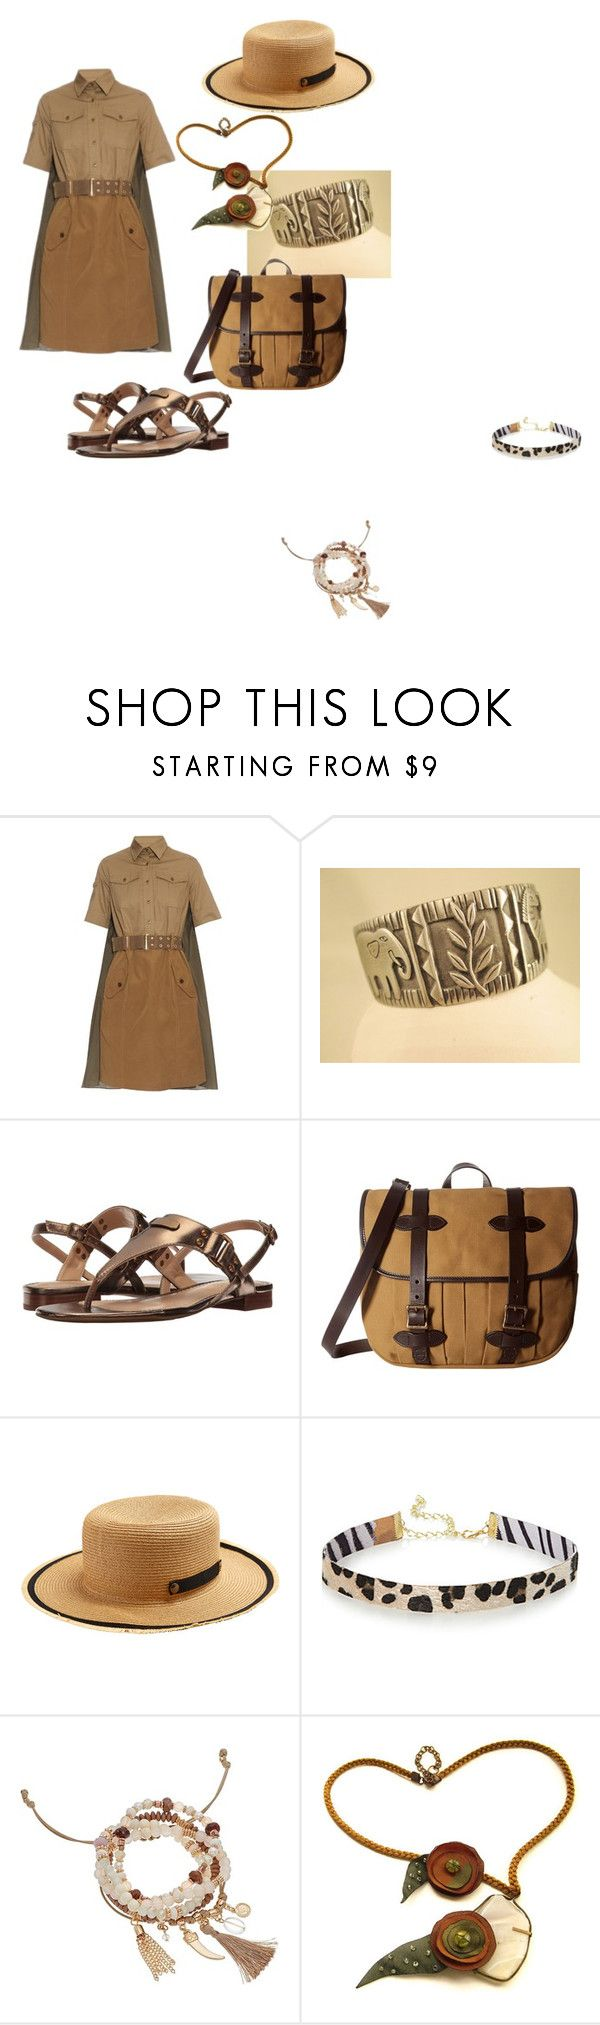 """Без названия #15"" by ms-studio ❤ liked on Polyvore featuring Kolor, Lauren Ralph Lauren, Filson, Filù Hats and Simons"